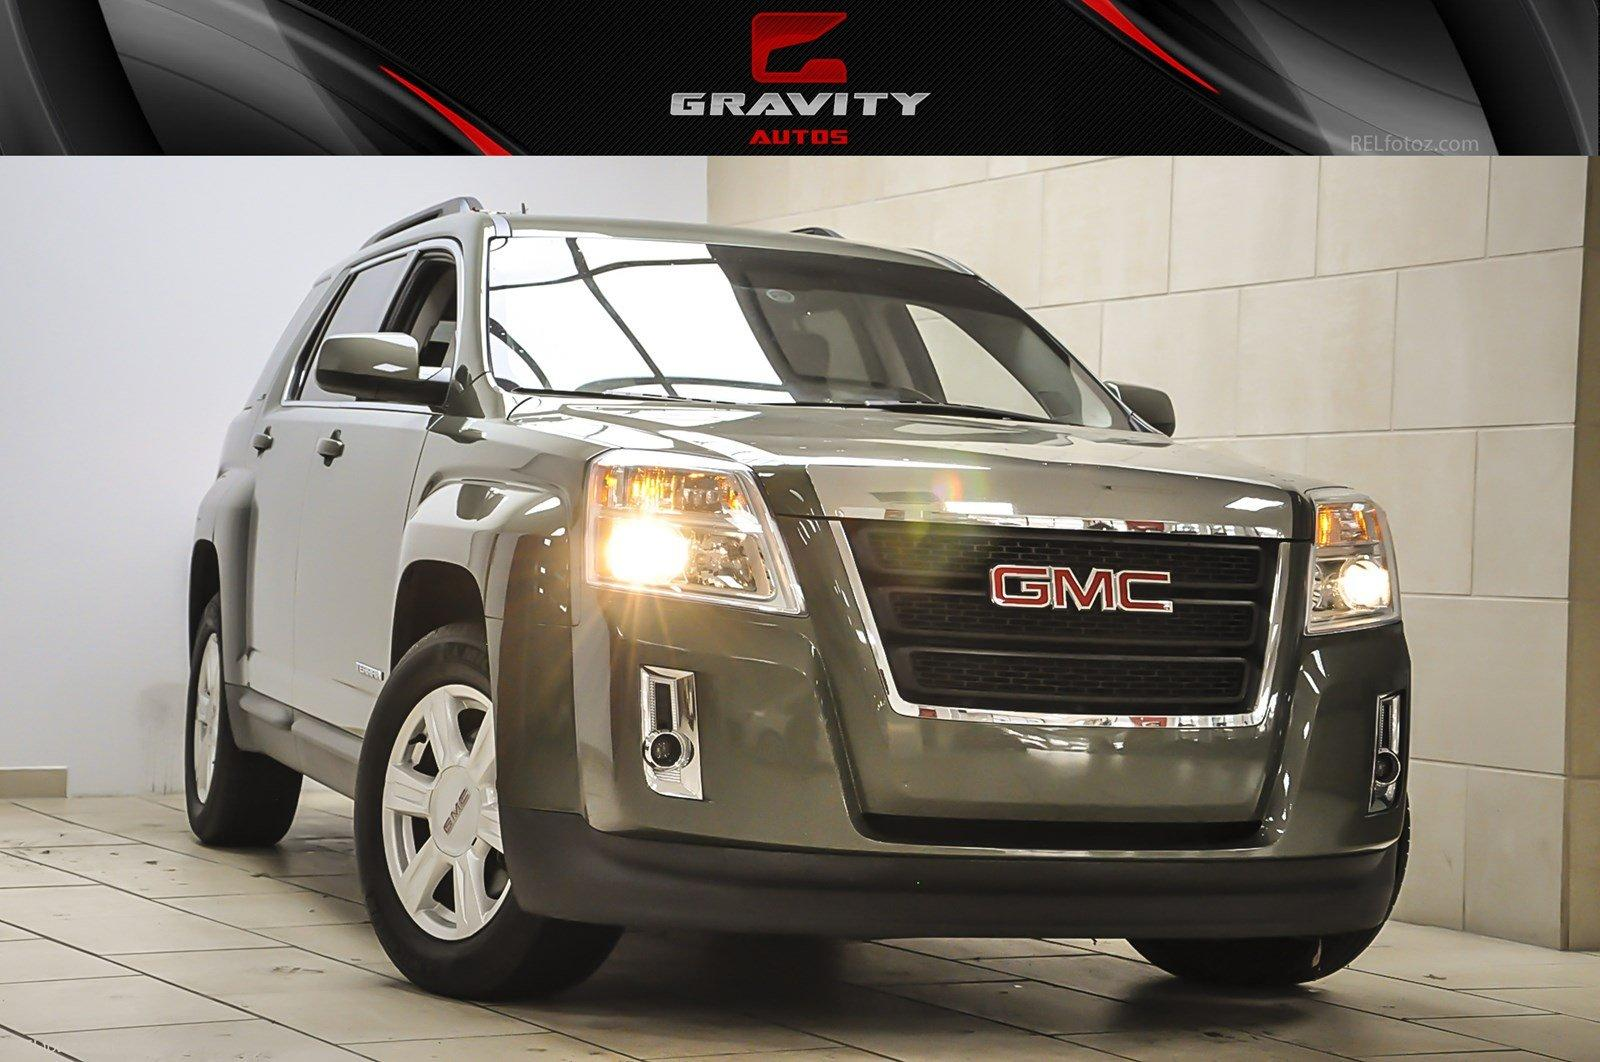 2015 gmc terrain sle stock 147687 for sale near sandy springs ga ga gmc dealer. Black Bedroom Furniture Sets. Home Design Ideas